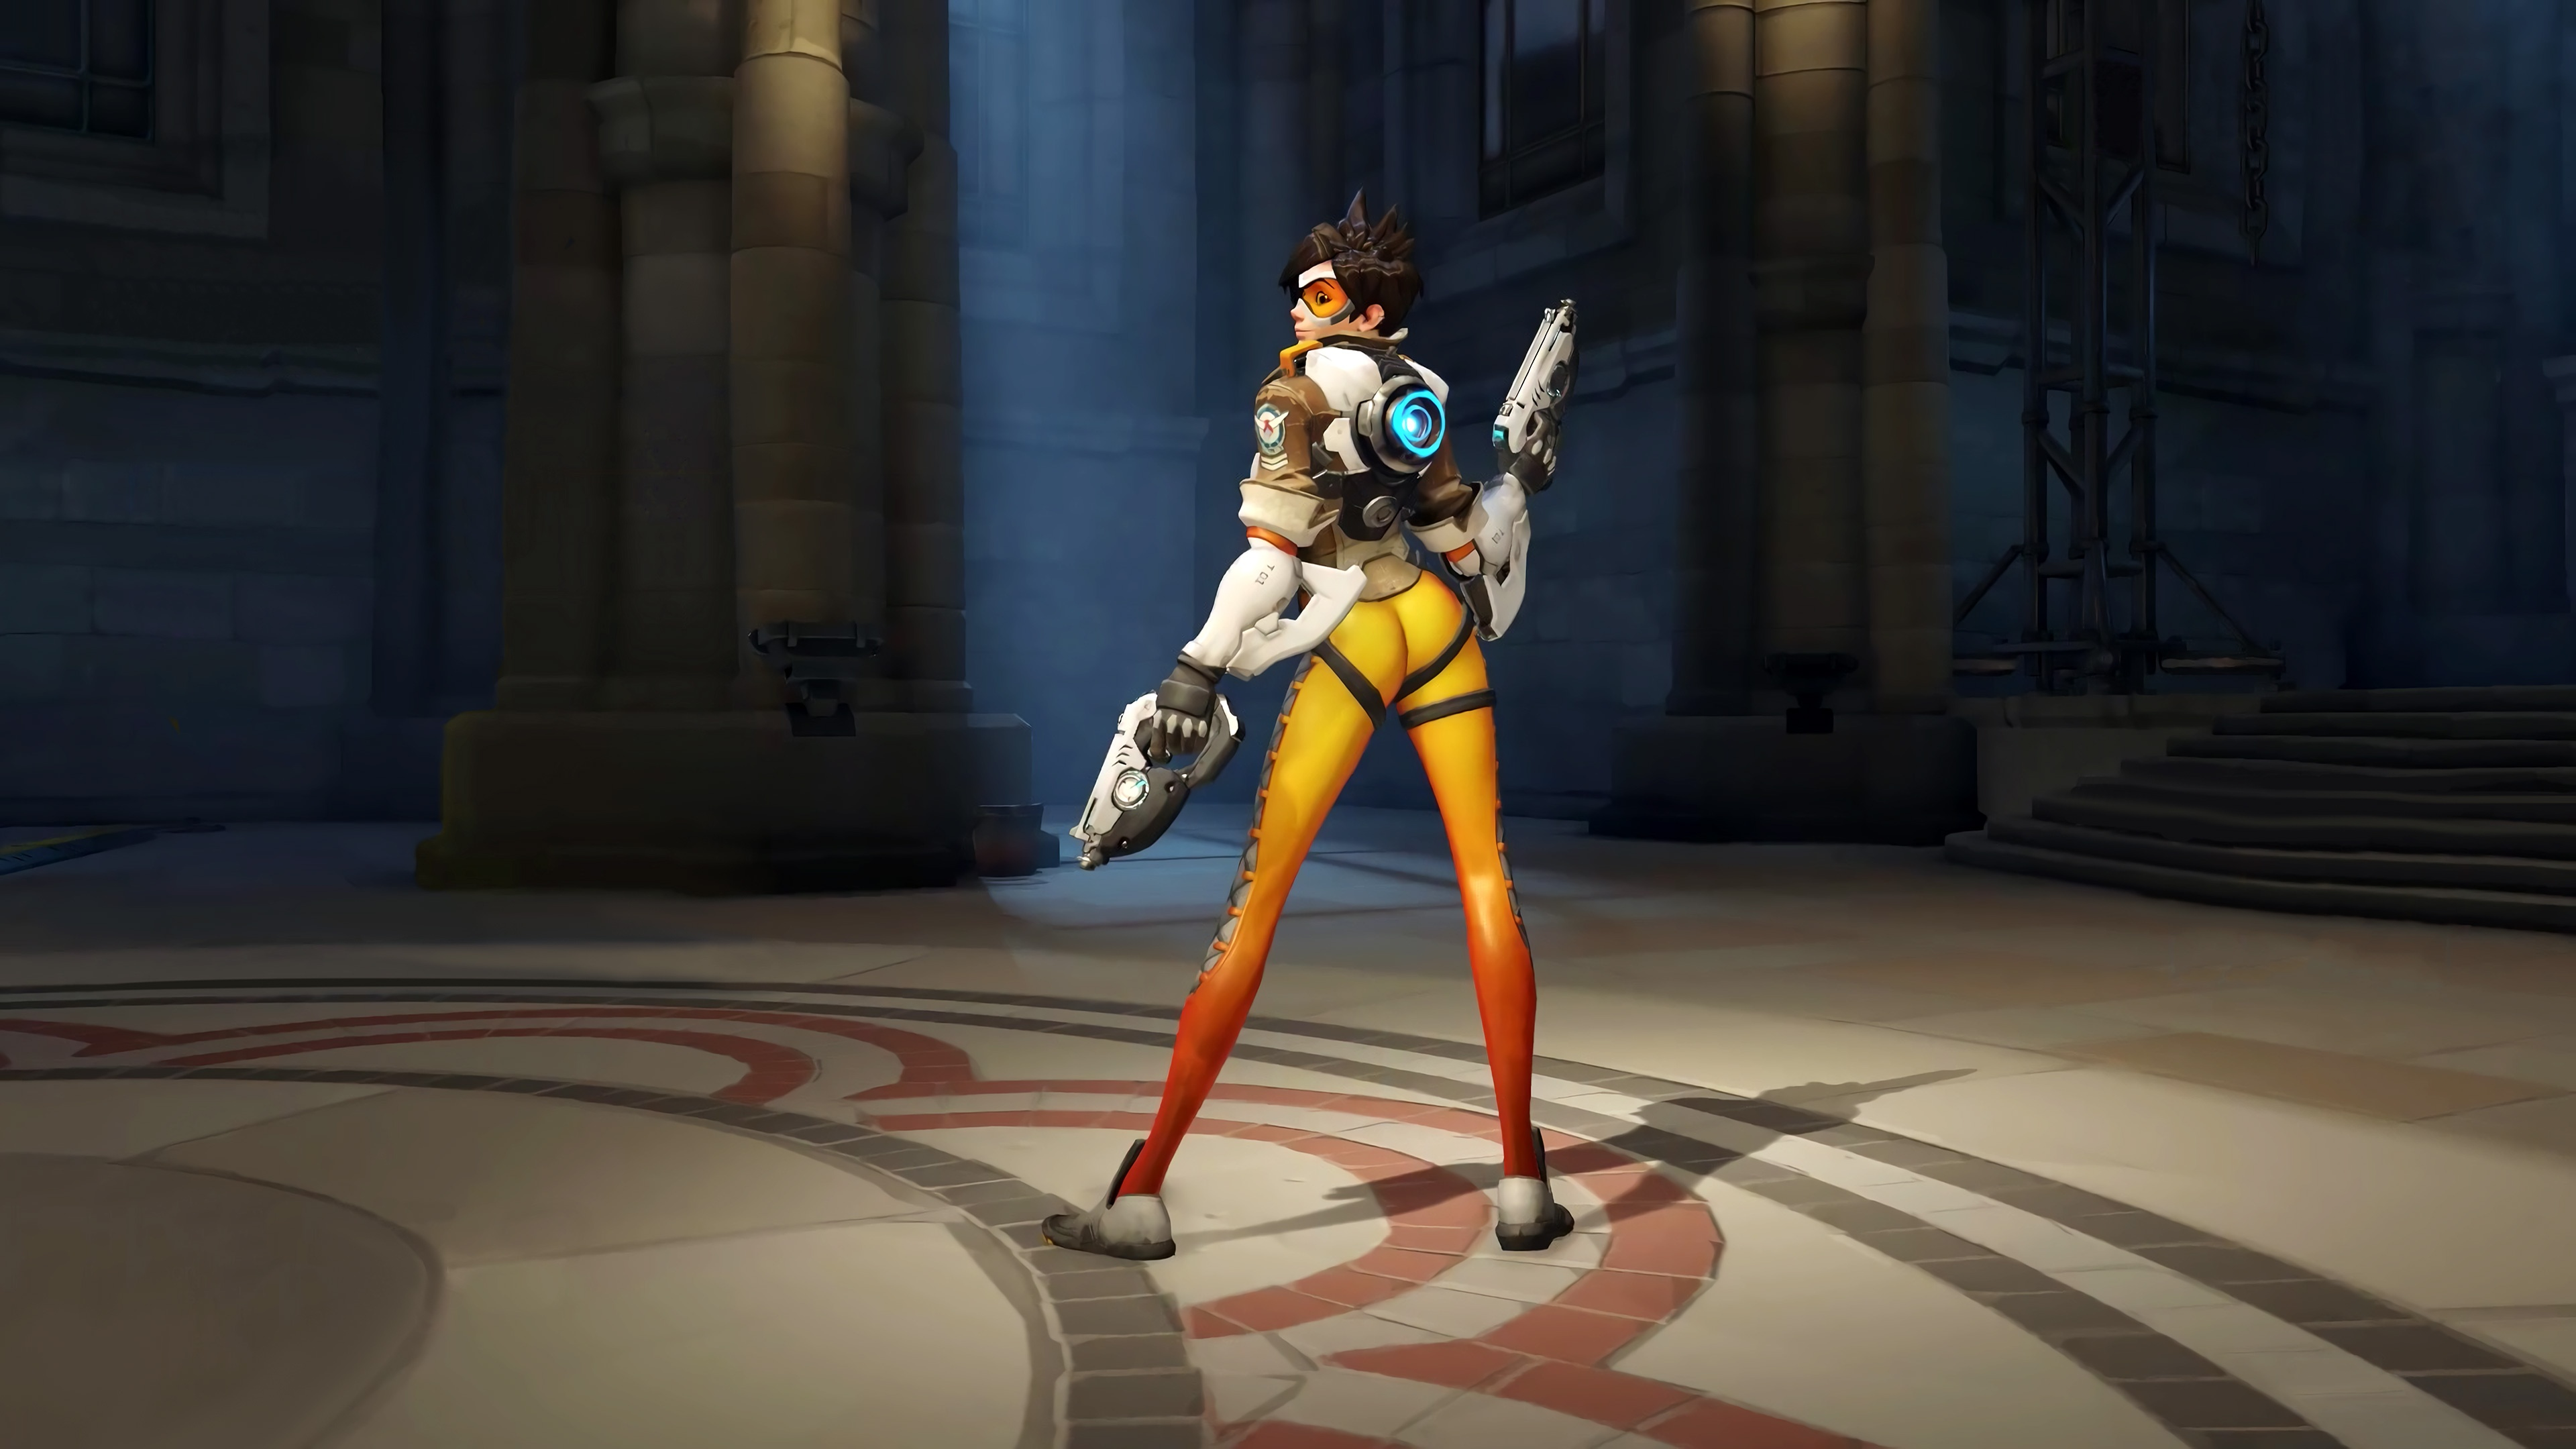 Tracer Overwatch 2016 Wallpapers HD Wallpapers 3840x2160